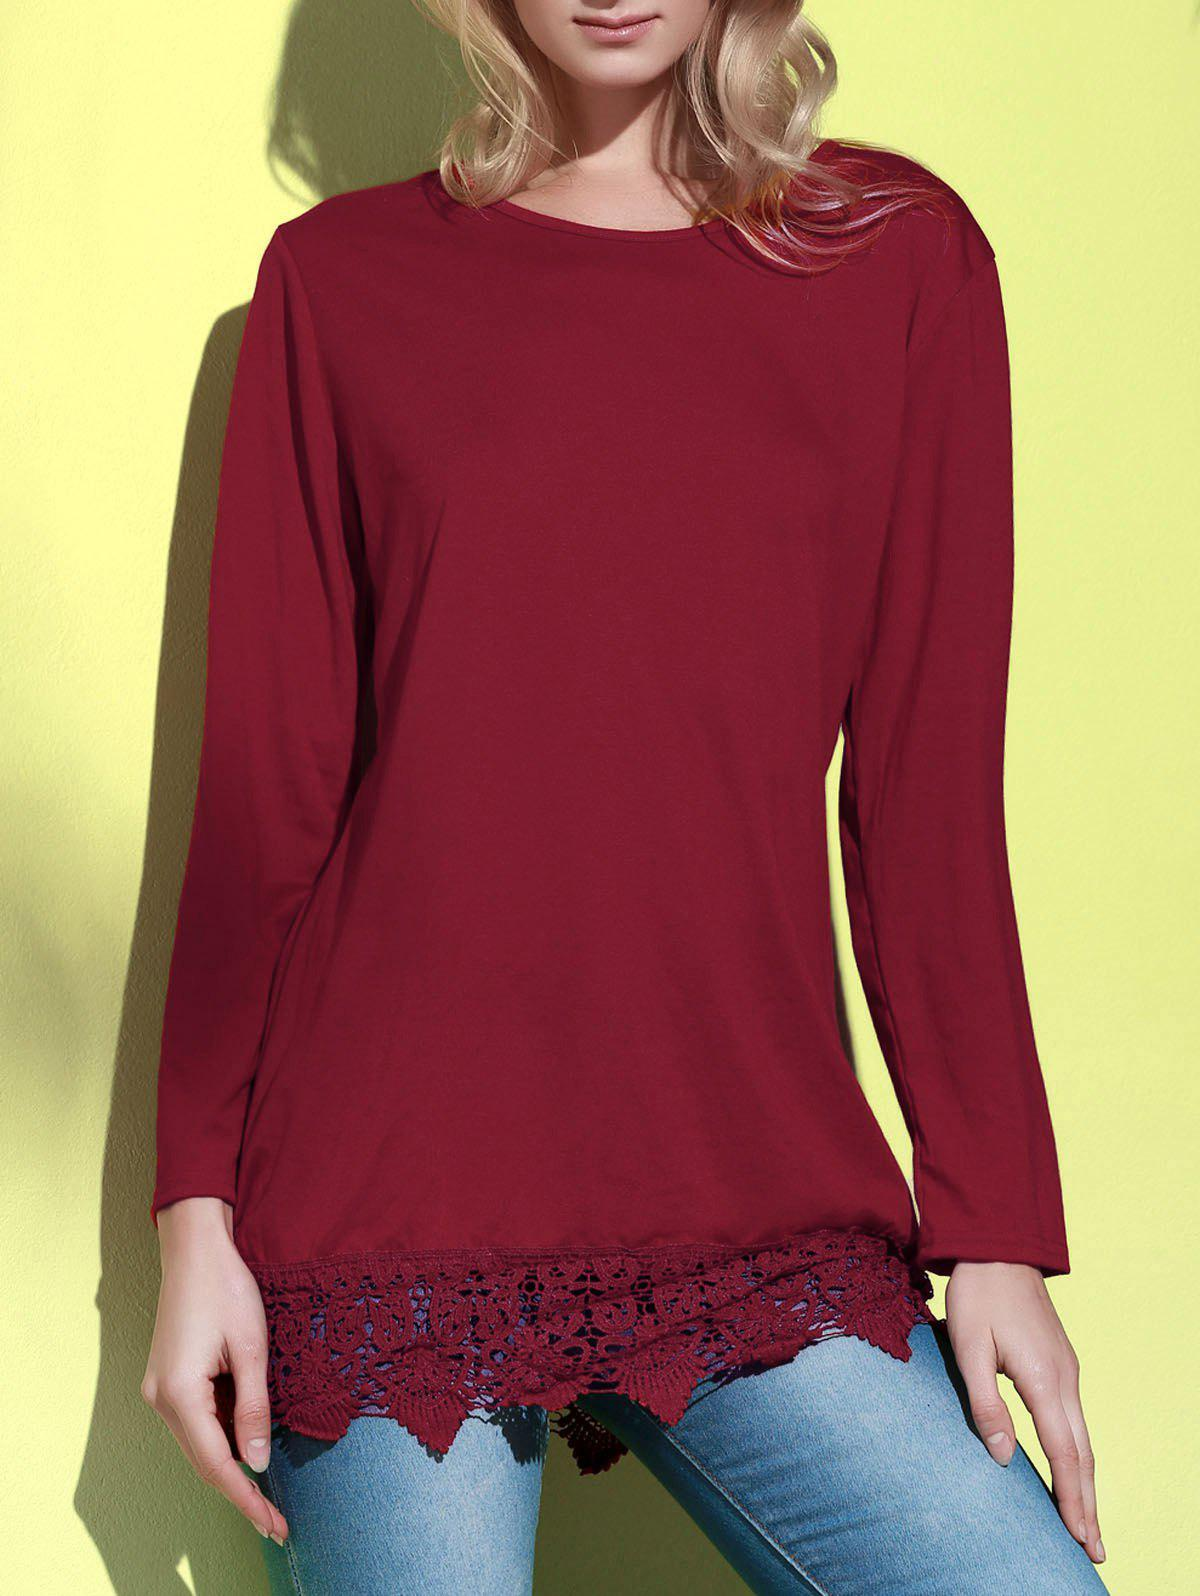 Stylish Long Sleeve Round Neck Laciness Pure Color Women's Dress - WINE RED XL